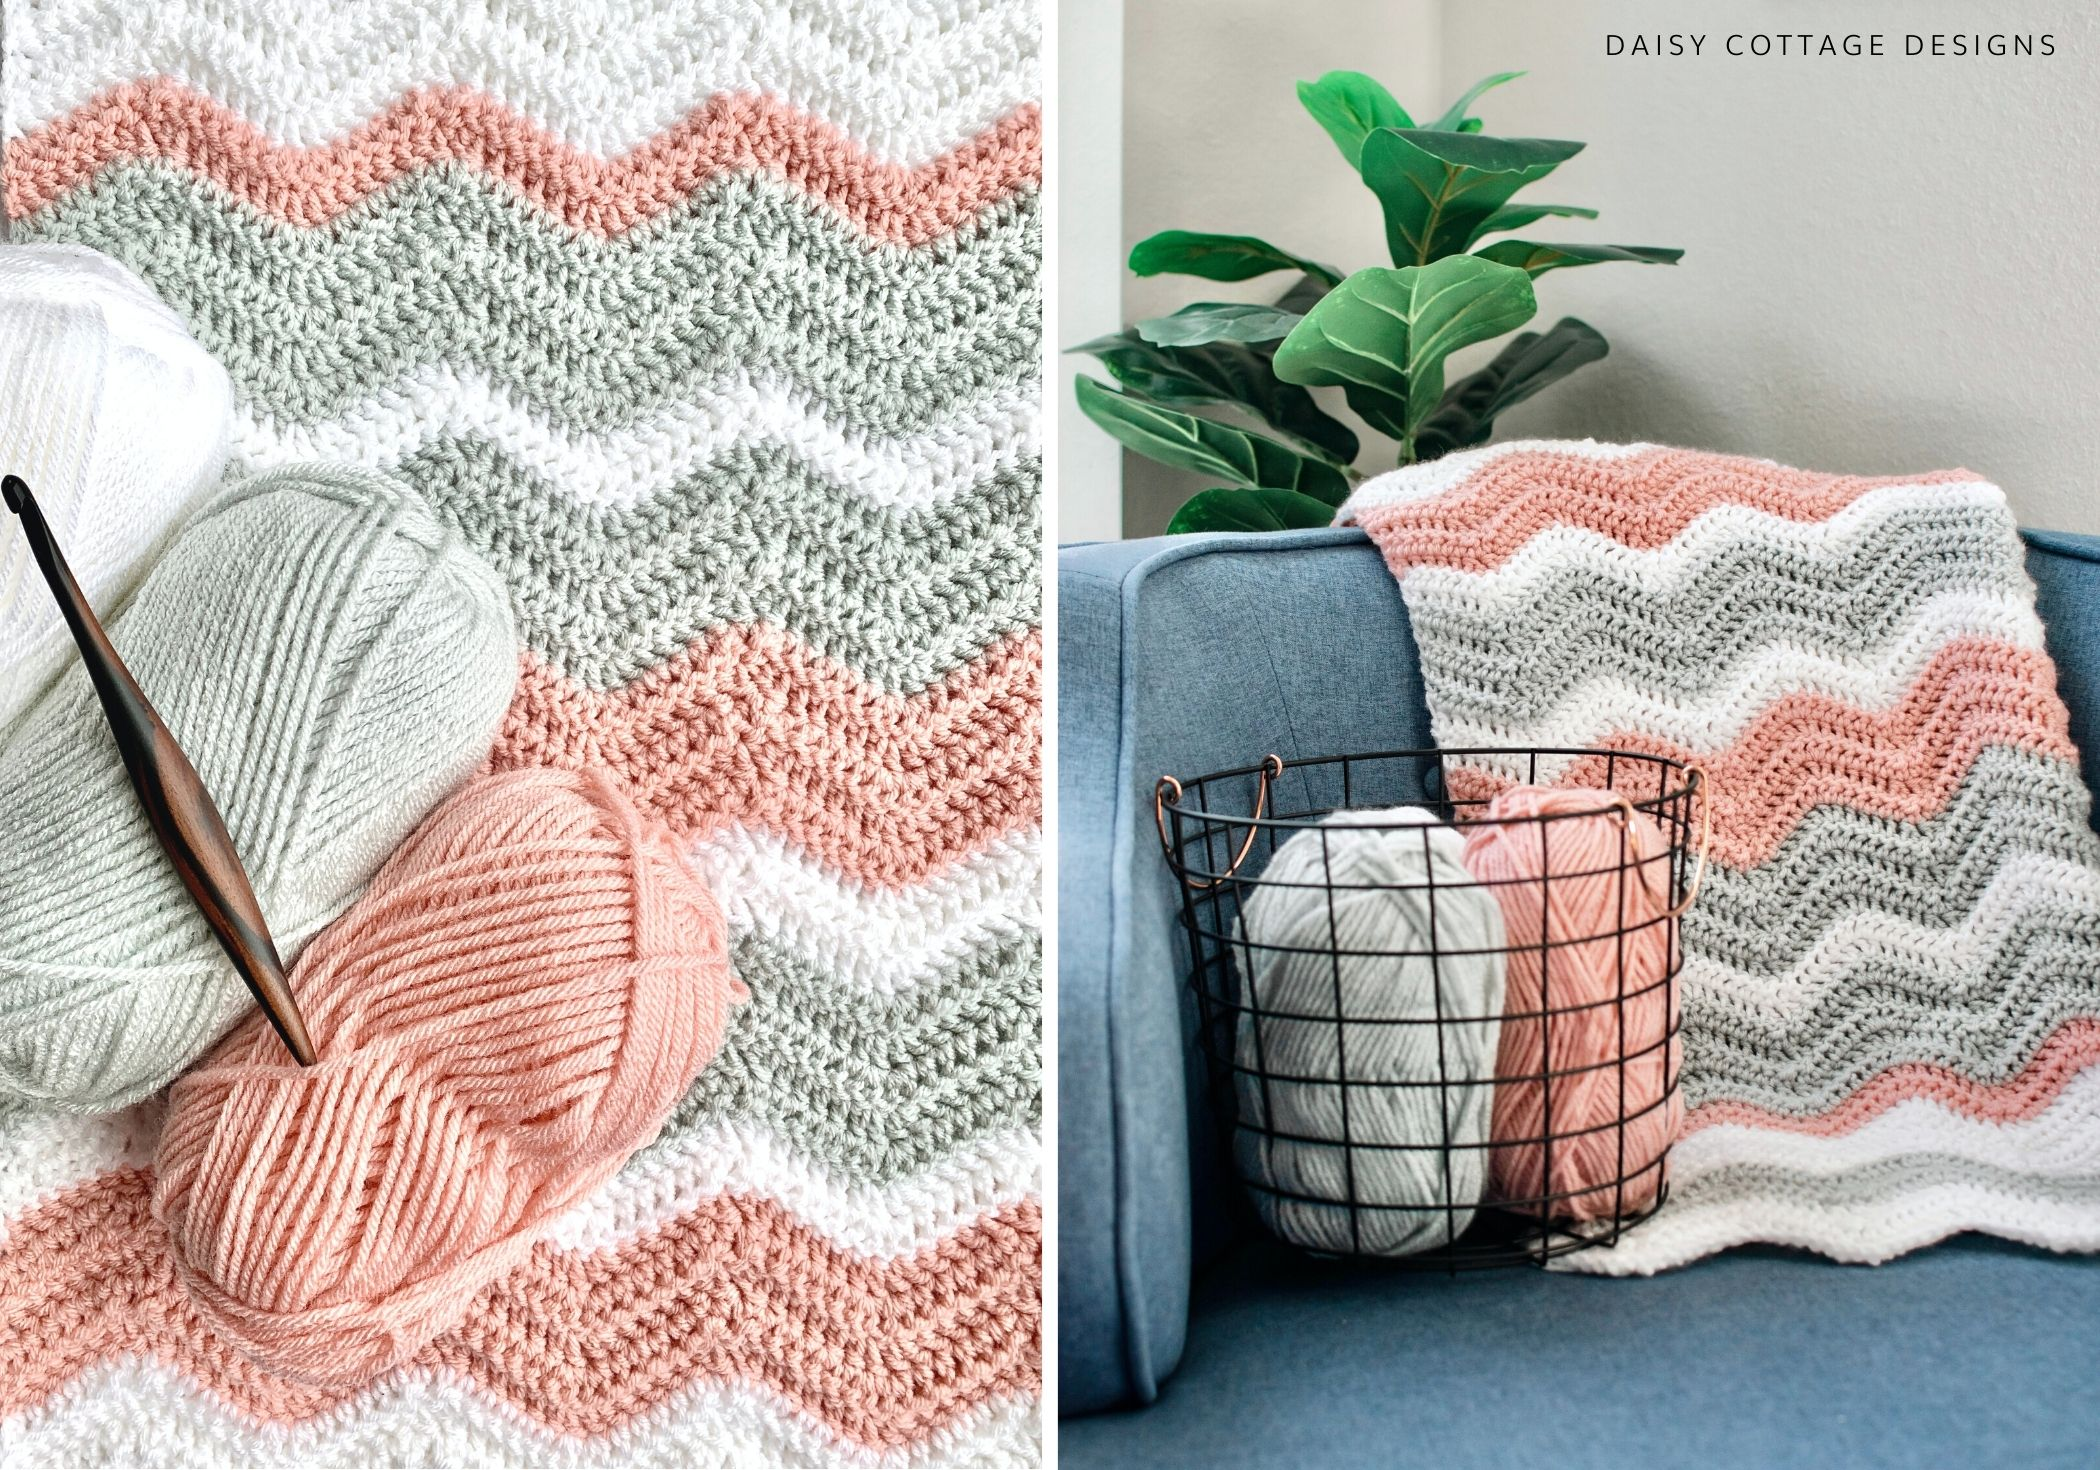 Free Crochet Baby Afghan Edging Patterns : Ripple Blanket Crochet Pattern - Daisy Cottage Designs